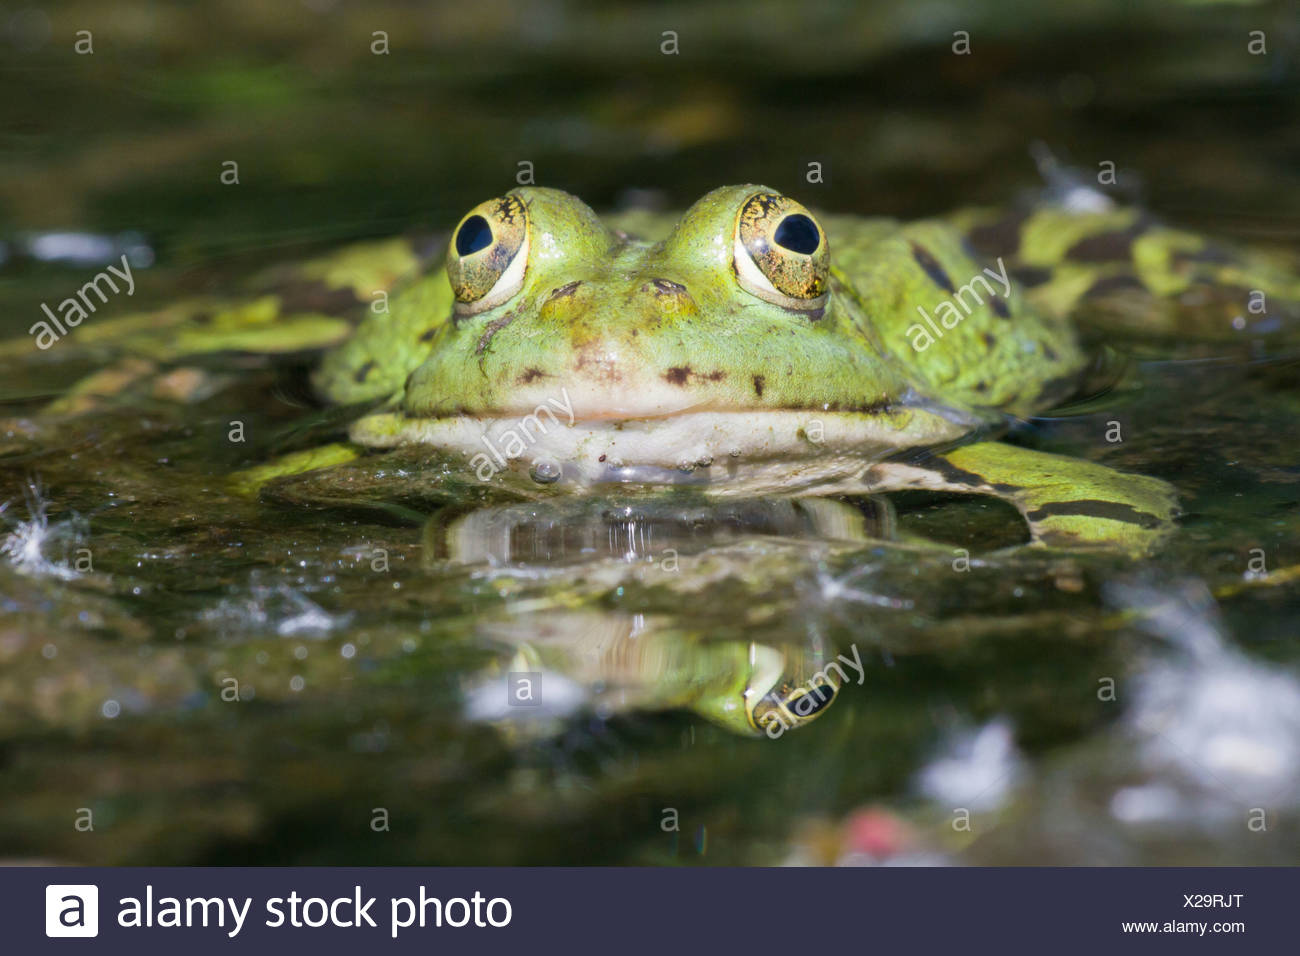 Edible Frog (Pelophylax kl. Esculentus), North Hesse, Hesse, Germany - Stock Image